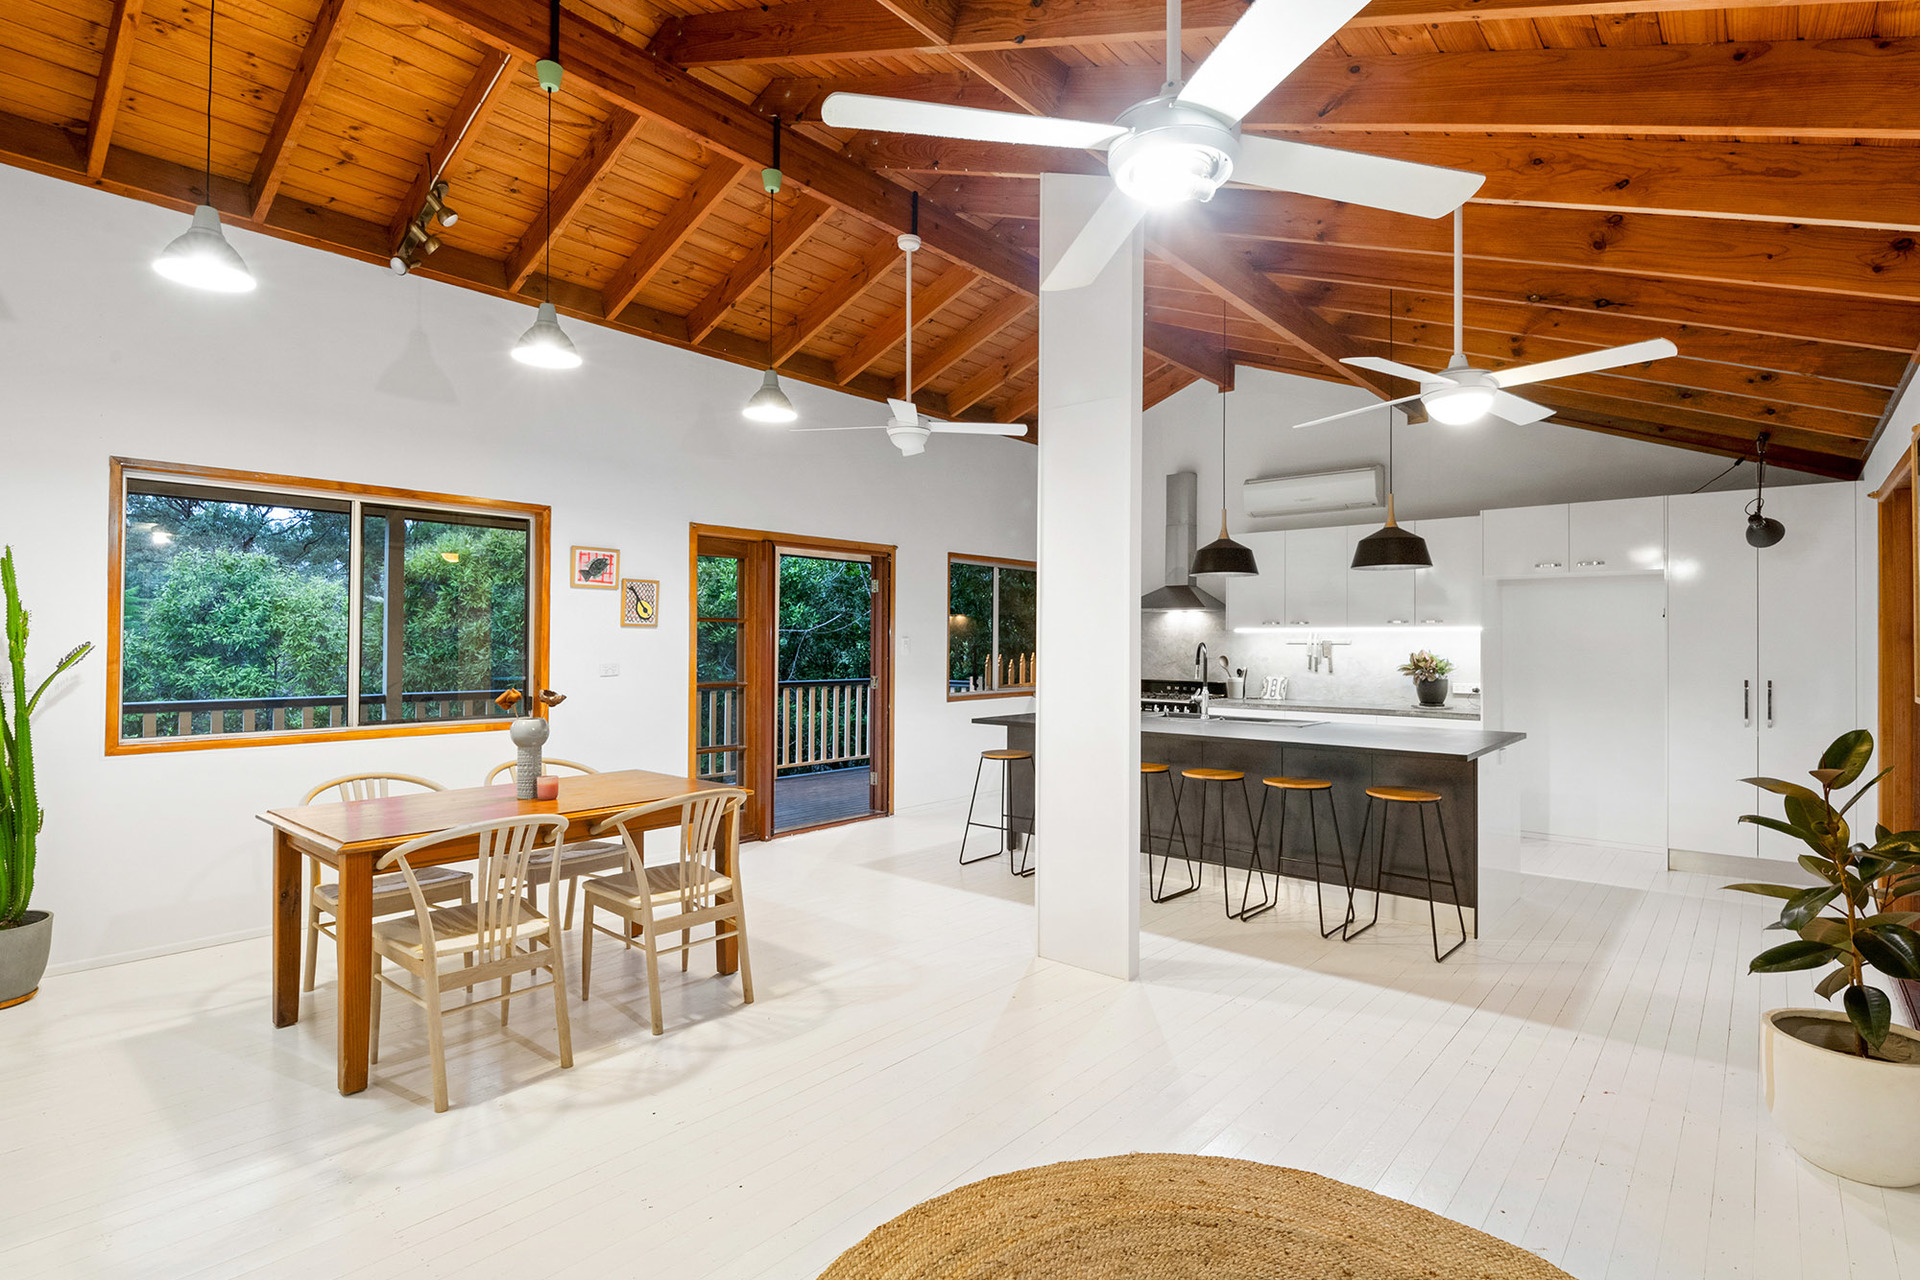 Superbly Constructed Home with Modern Family Living in Mind